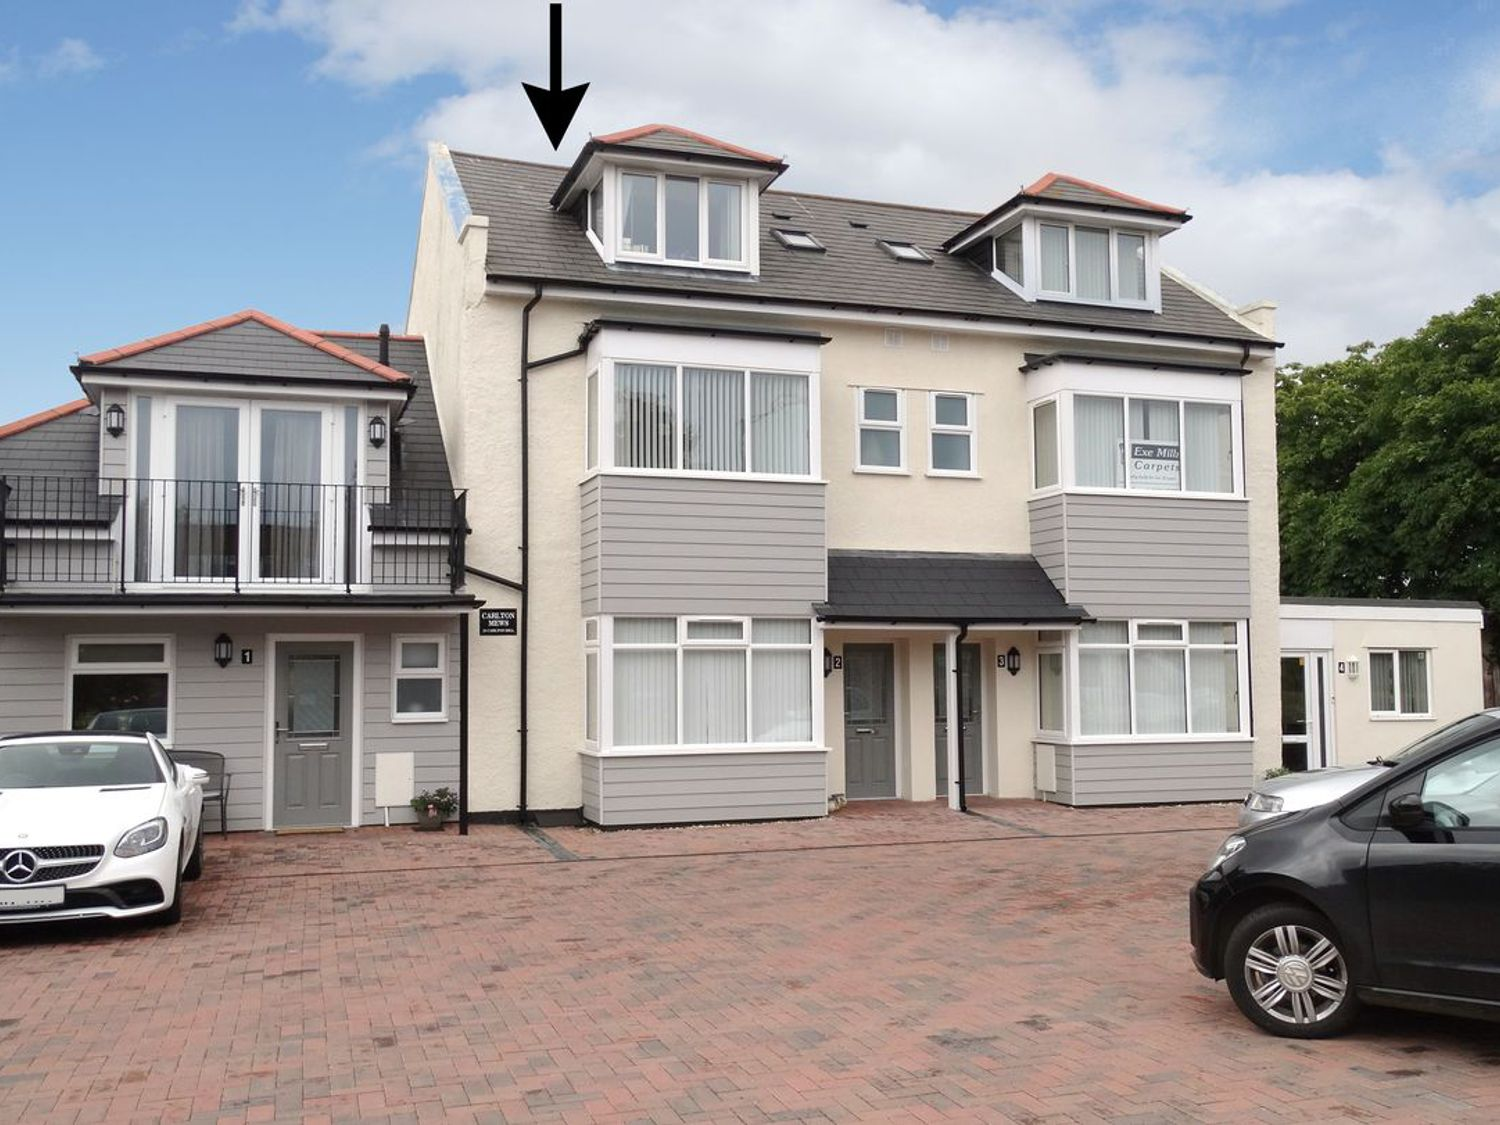 2 Carlton Mews - Devon - 976014 - photo 1